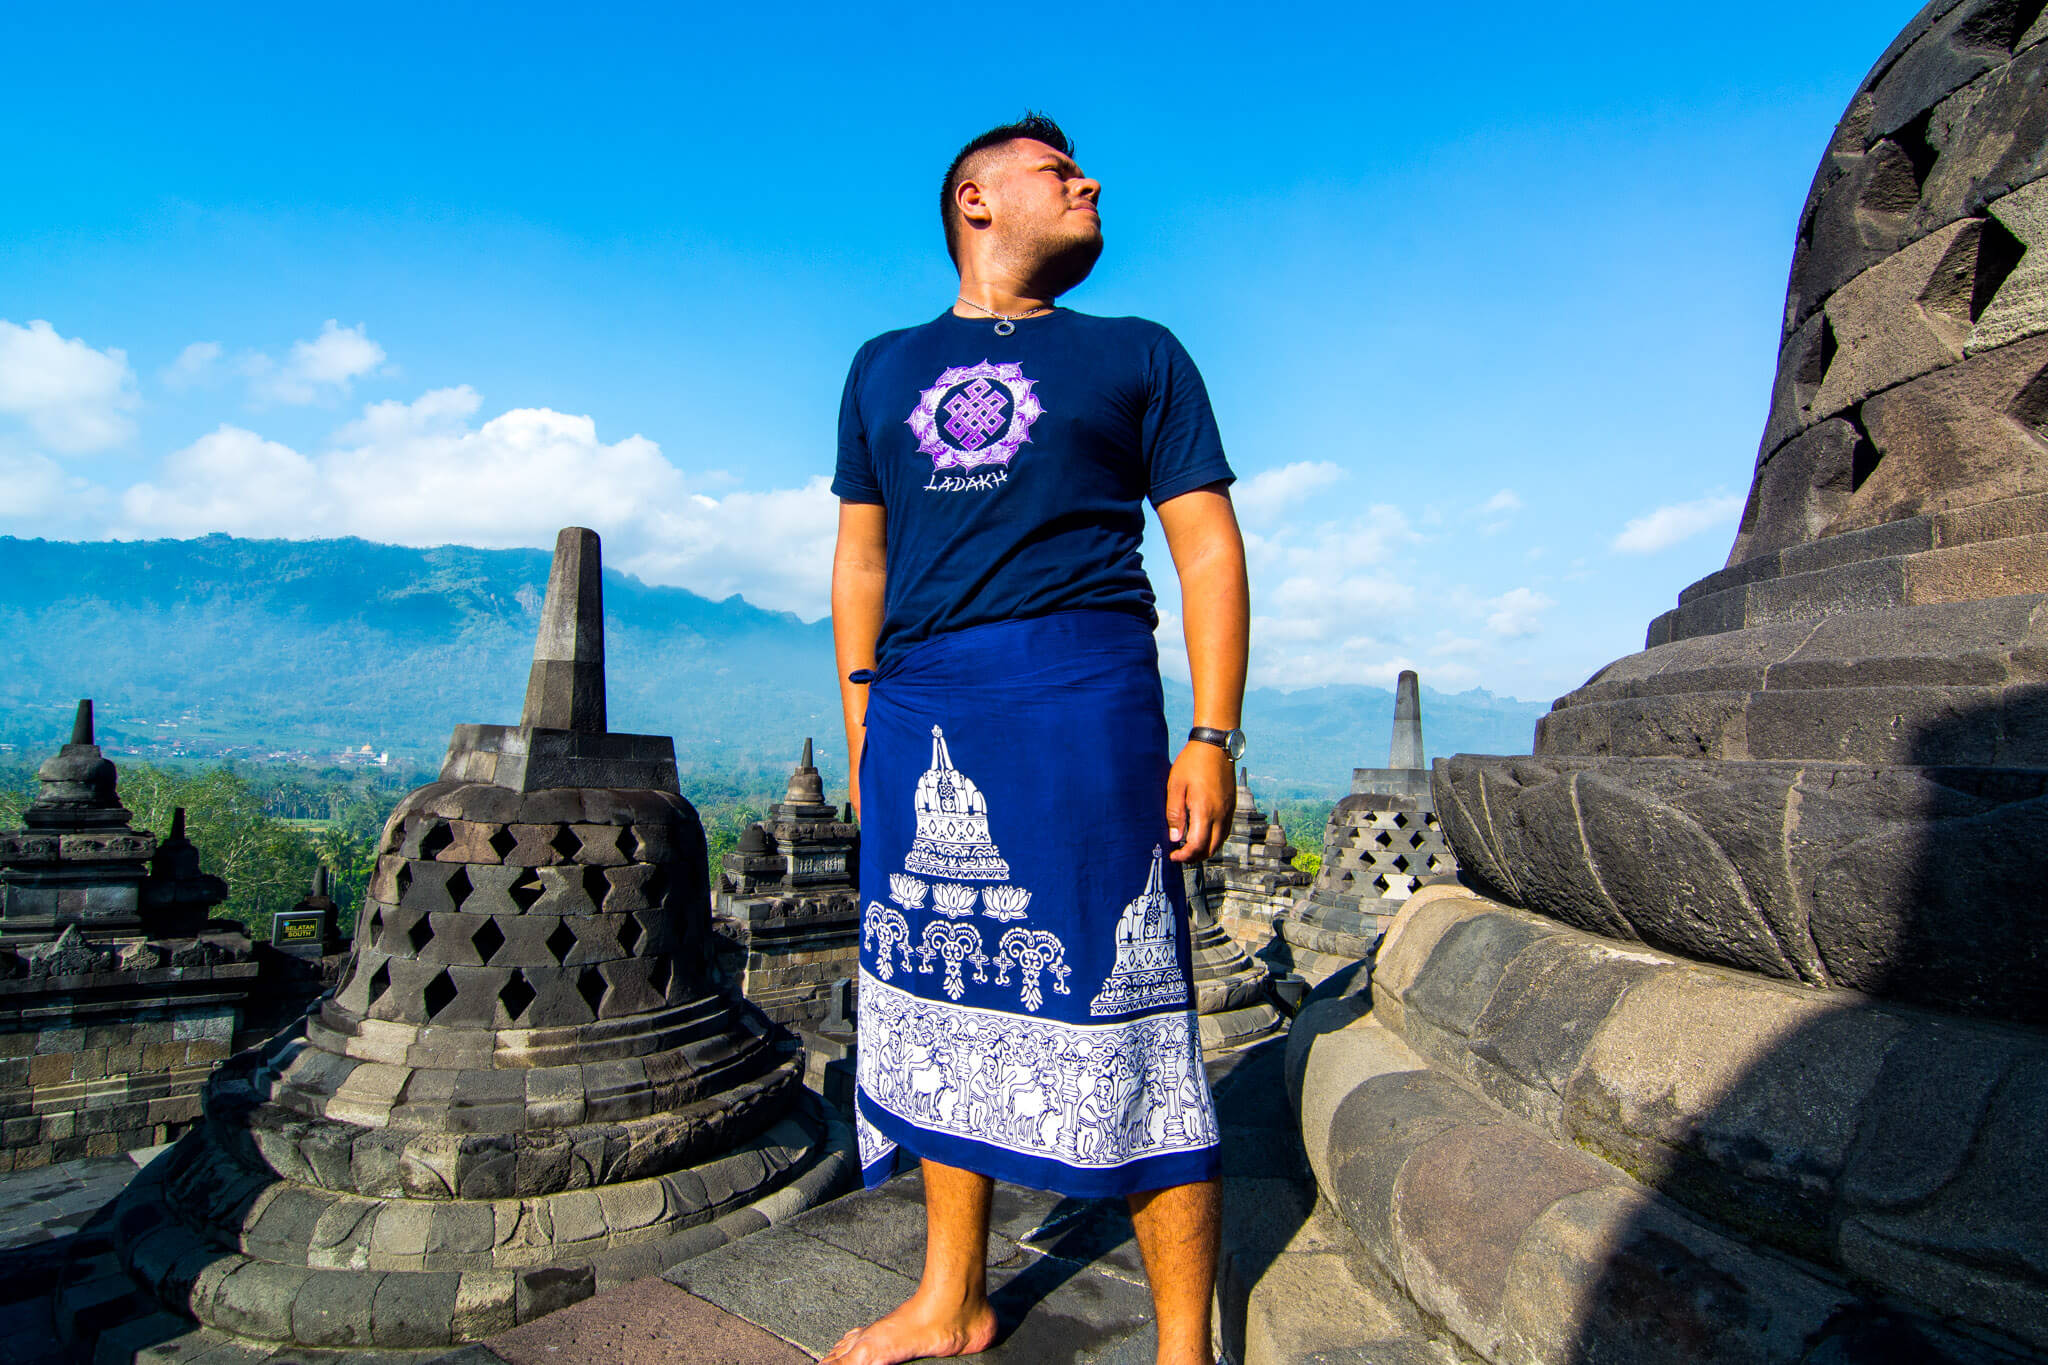 The Man of Wonders at Borobudur, Indonesia